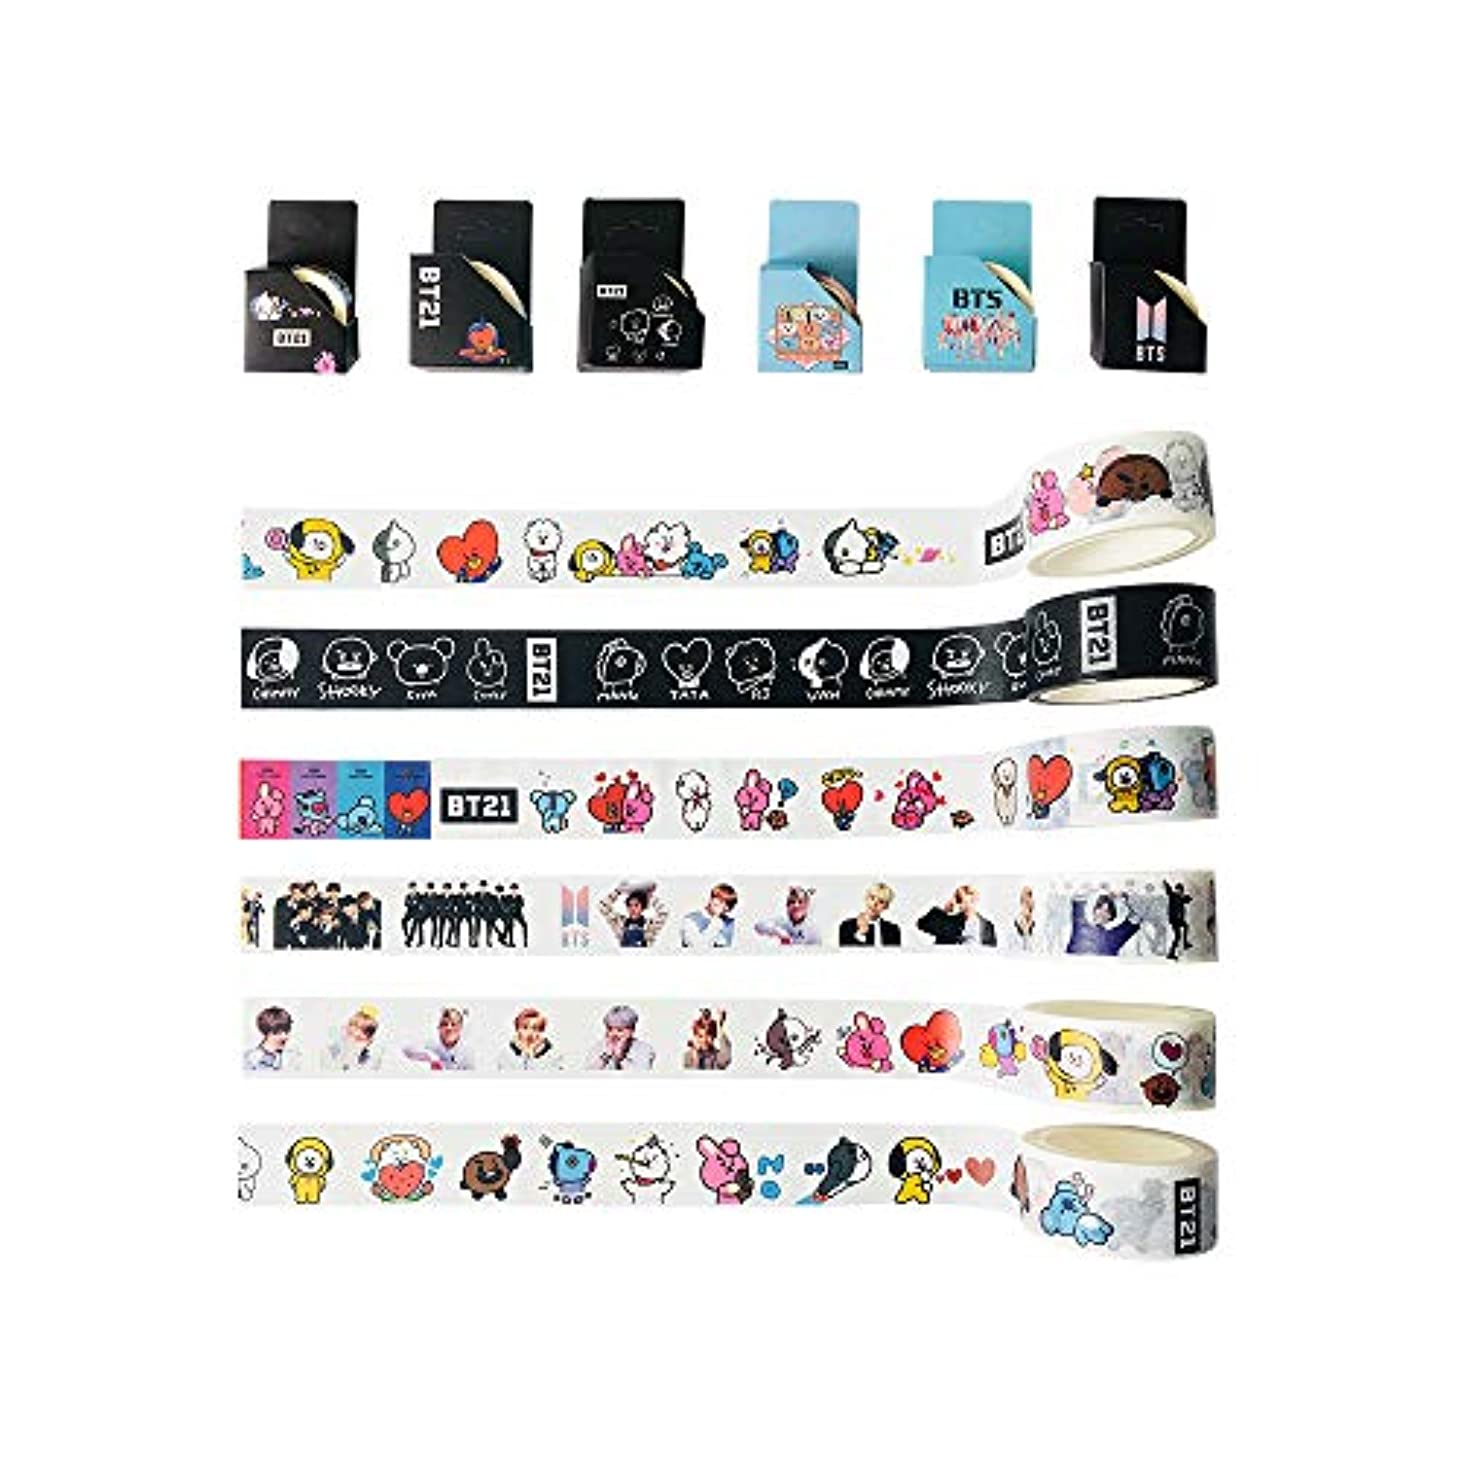 BTS Paper Tape BANTAN Boys Merchandise of Tearable Masking Tape, Gifts for Army Daughter (Cartoon+BTS, 6pcs)